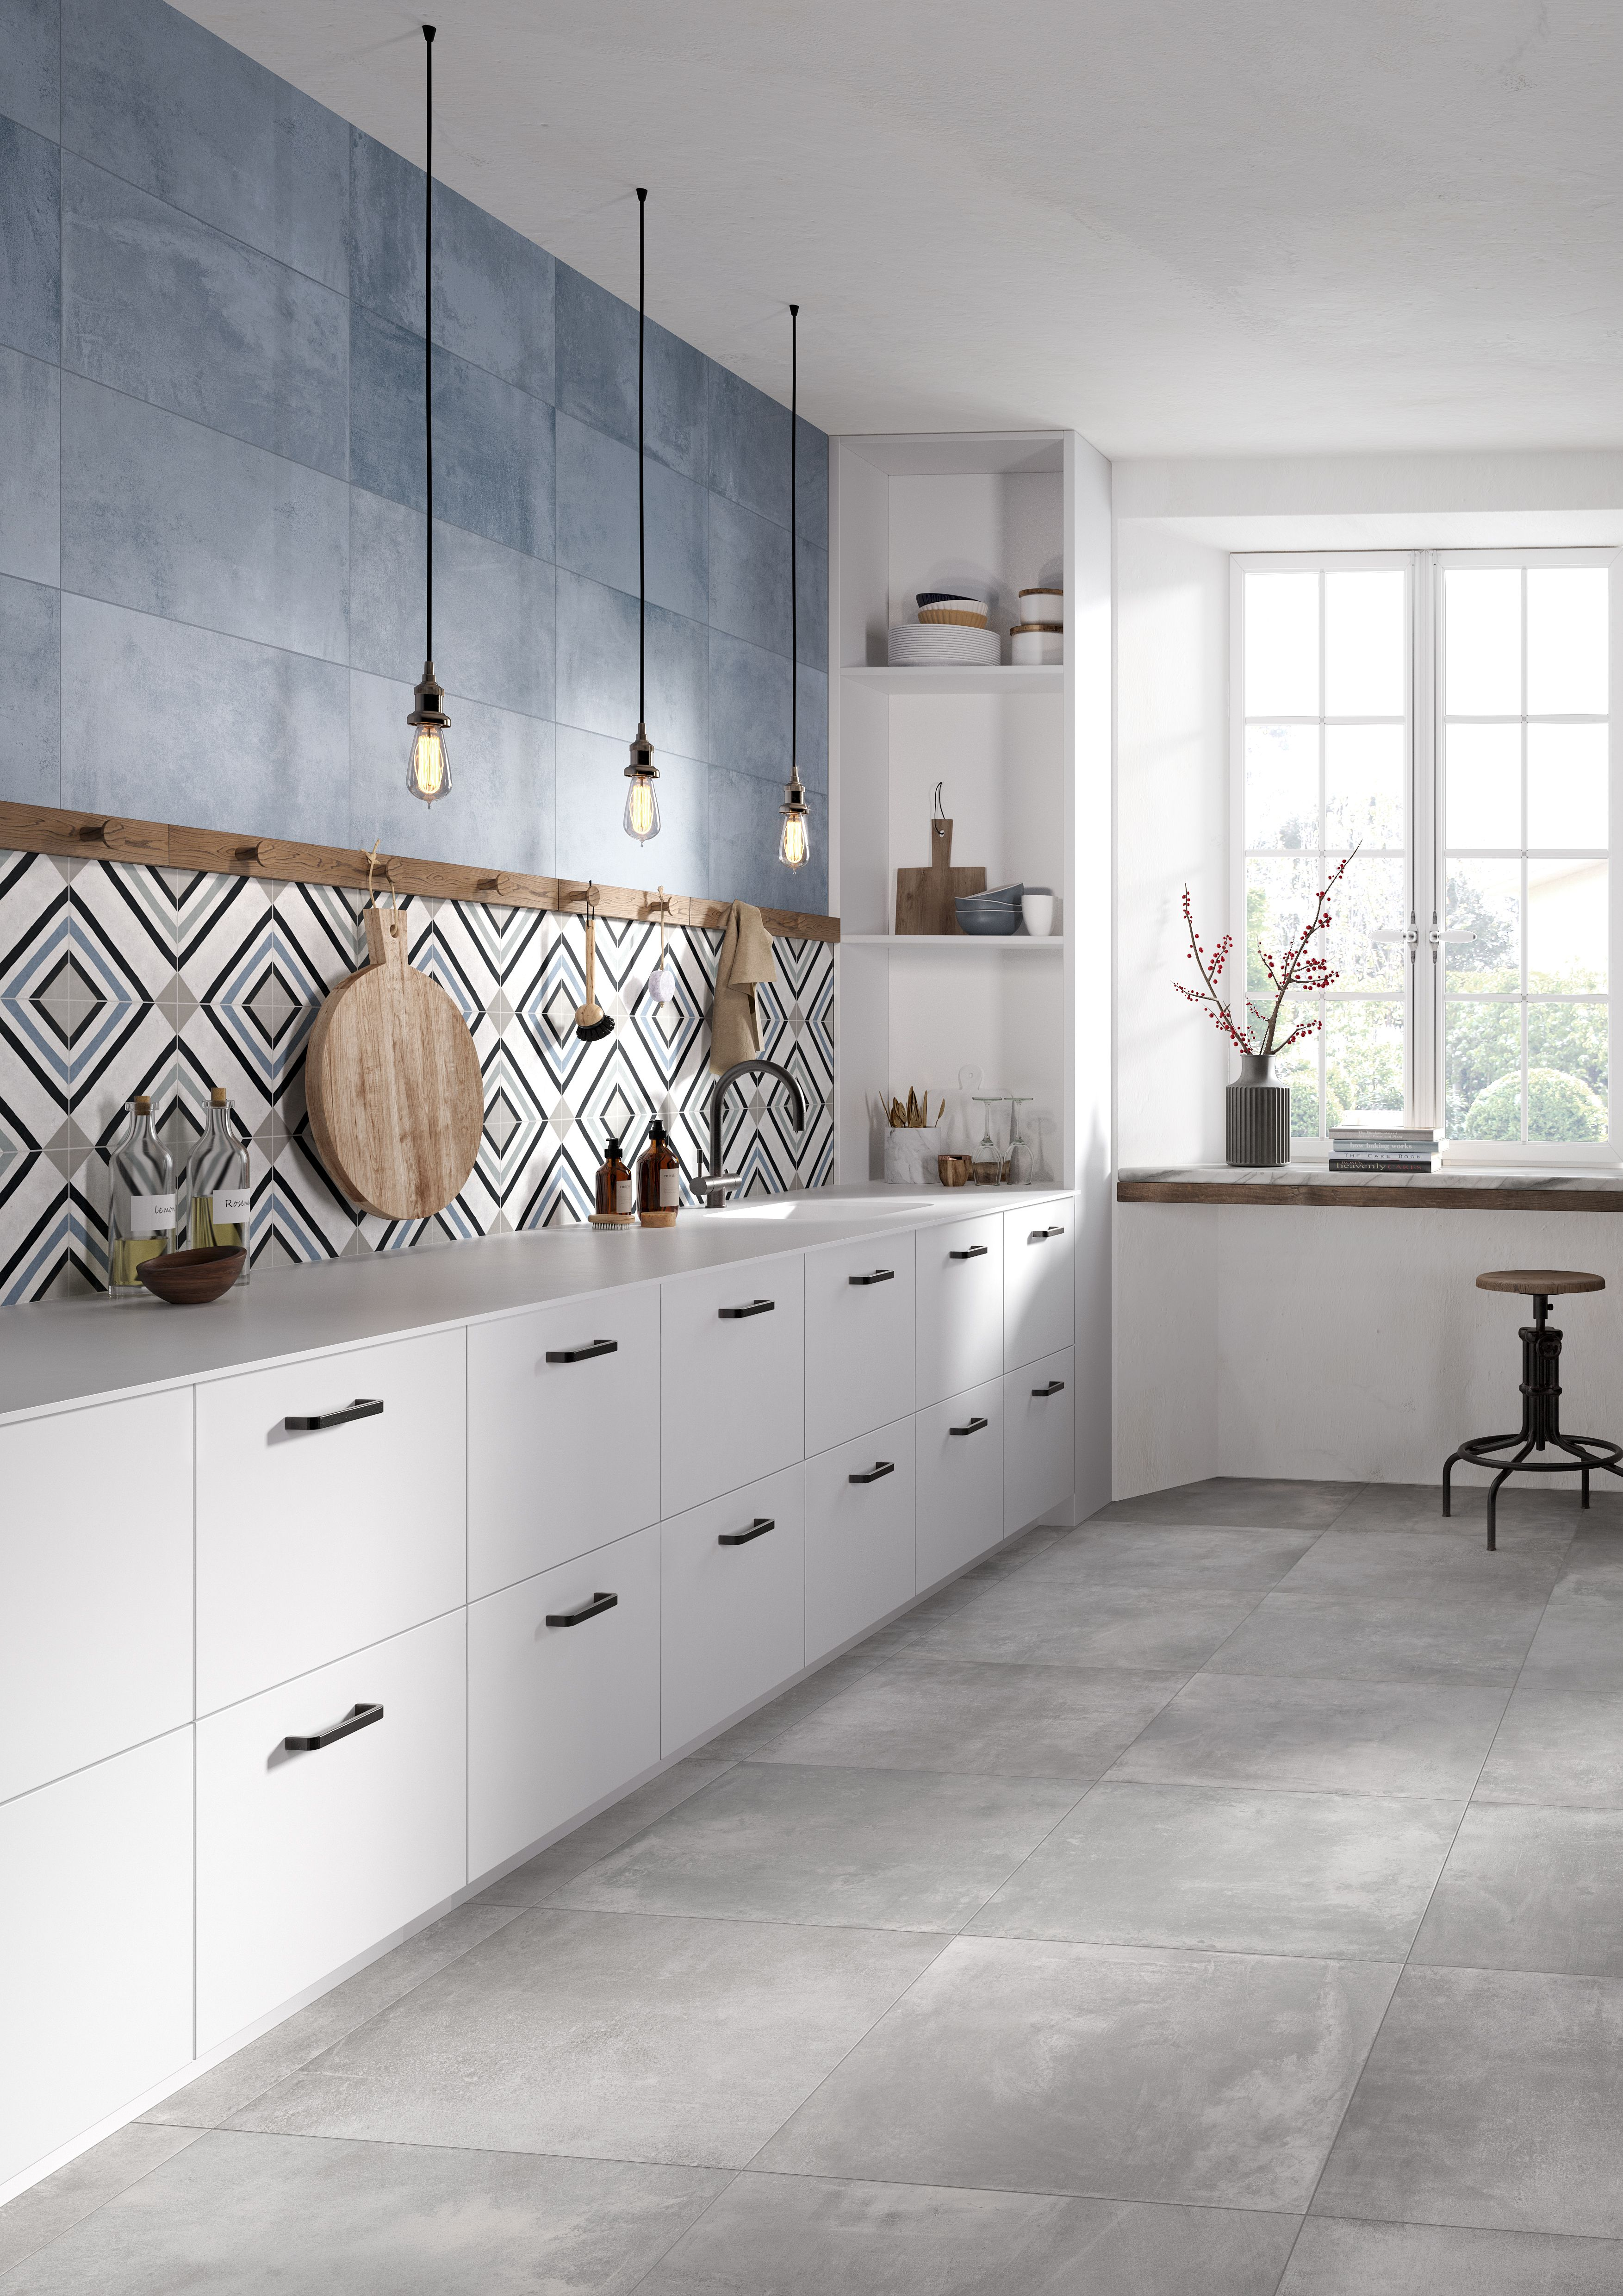 Porcelain Stoneware Wall Floor Tiles With Concrete Effect Industrial Color Chic By Ceramica Rondine Living Room Tiles Kitchen Wall Tiles Modern House Flooring